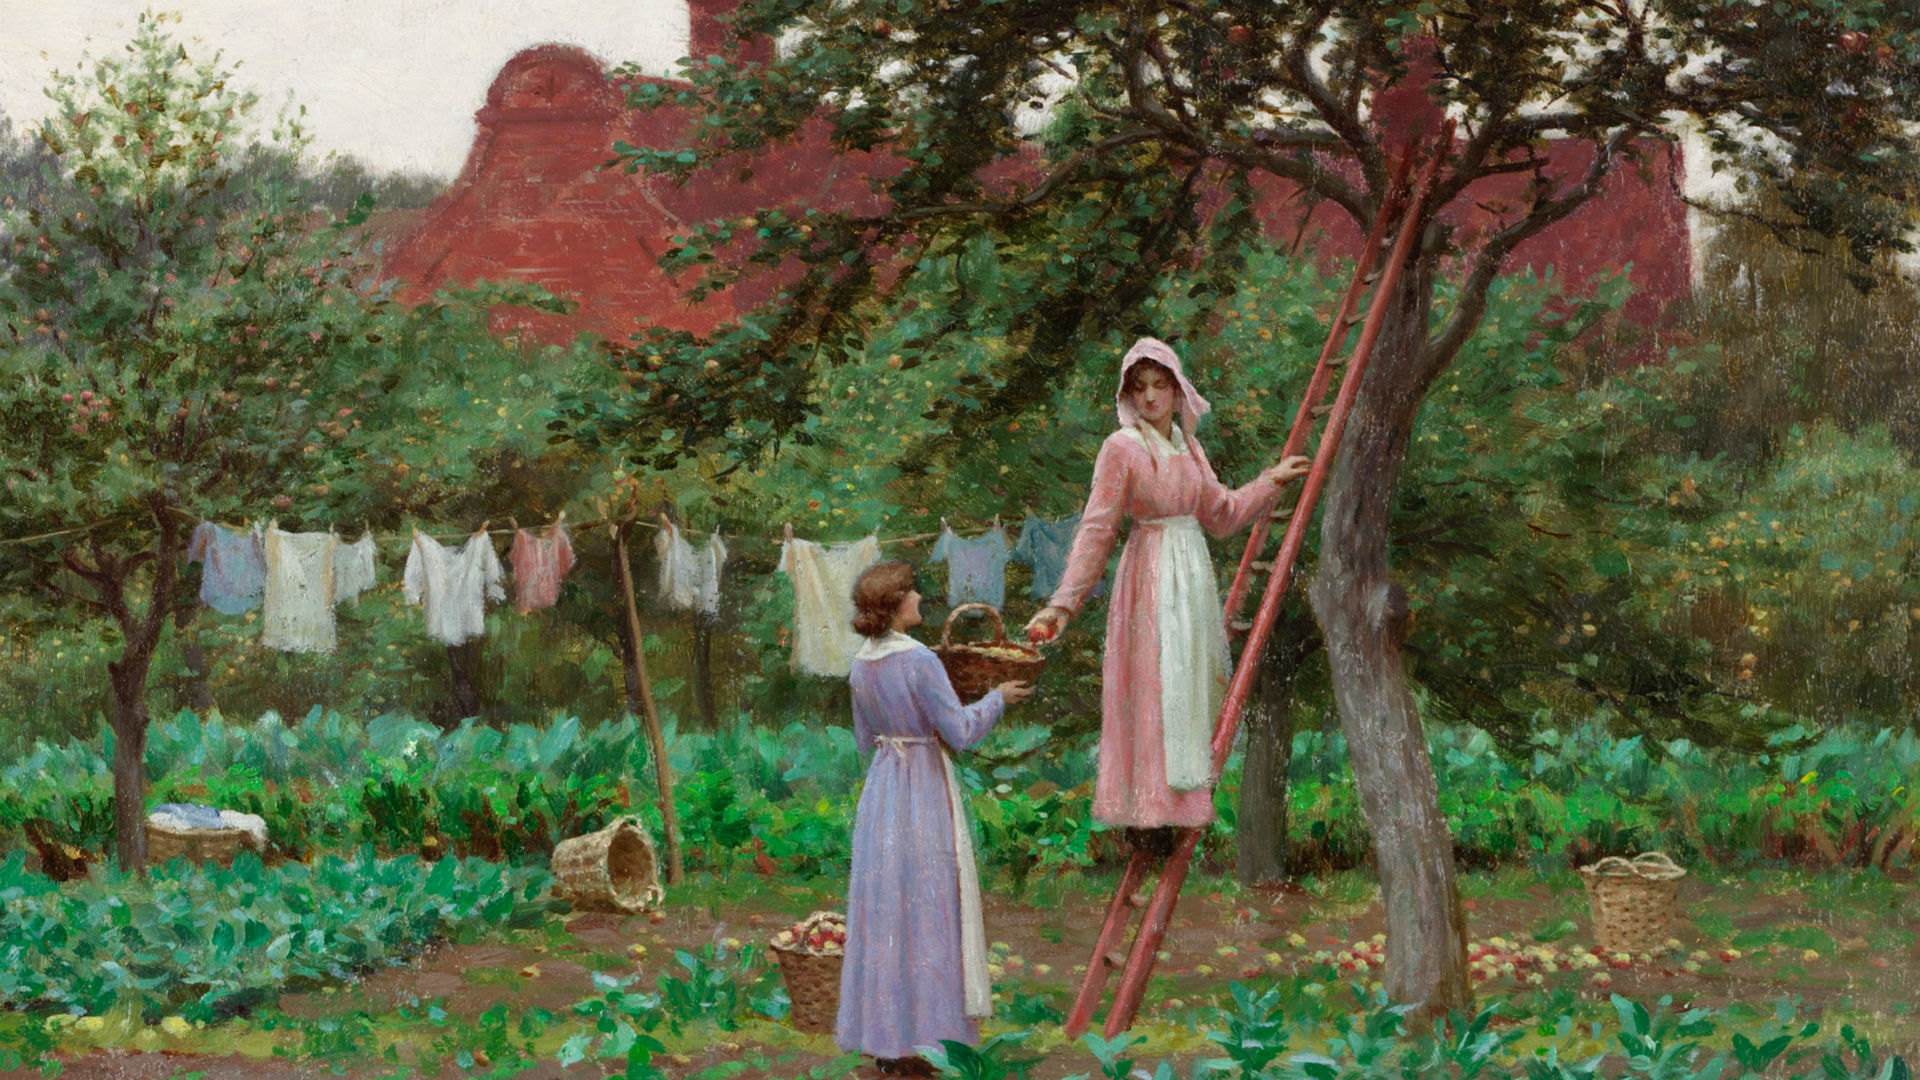 Two women in a garden by Edmund Blair Leighton as part of The Enchanted Garden exhibition at William Morris Gallery